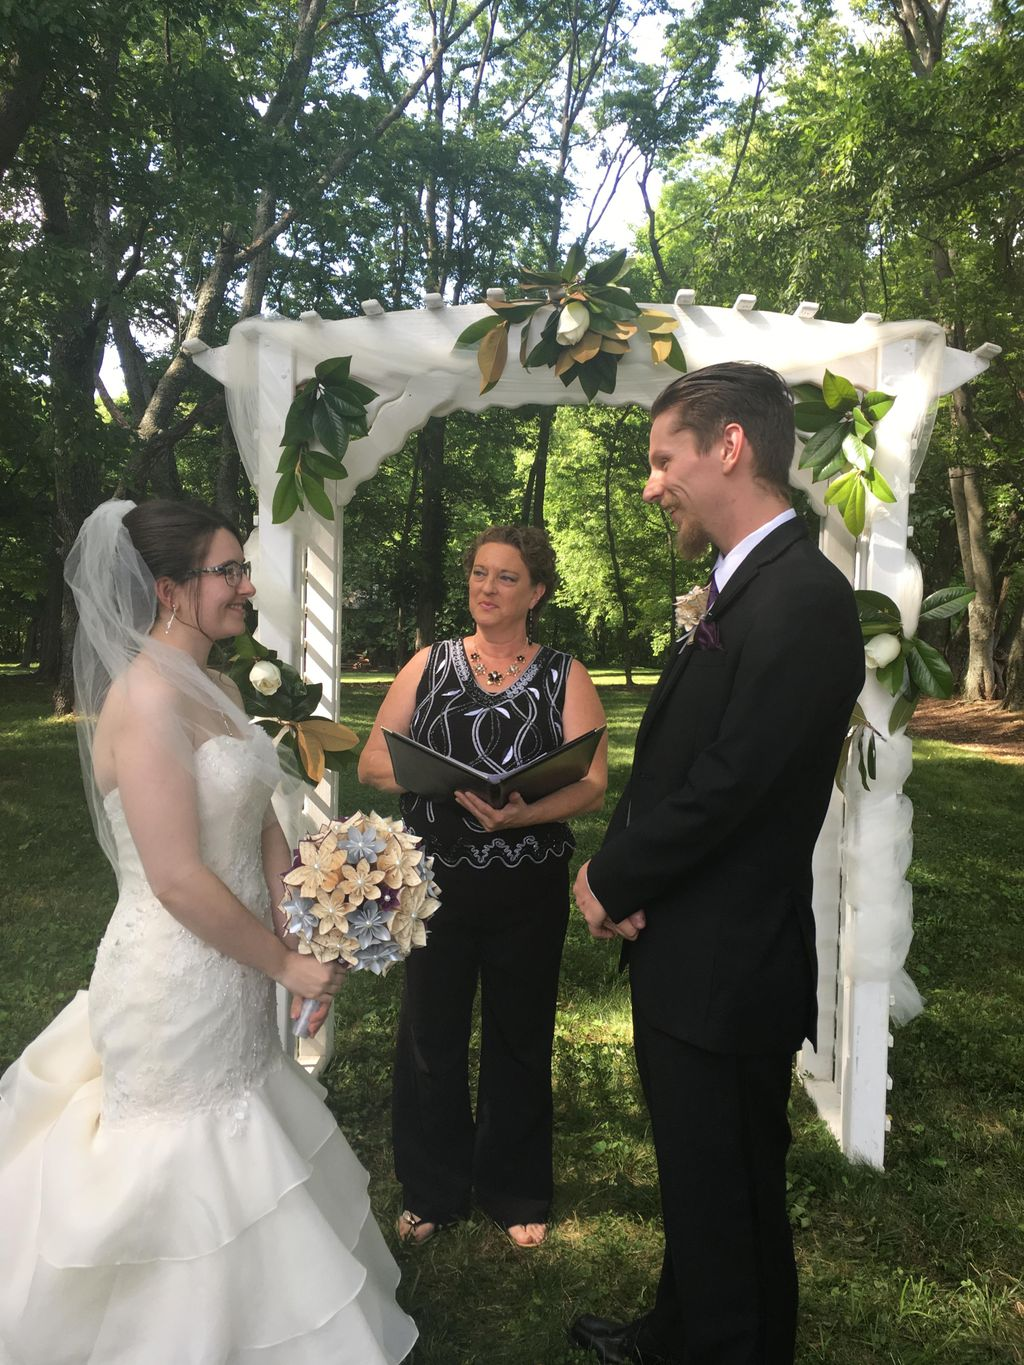 TN Mobile Public Notary and Wedding Officiant